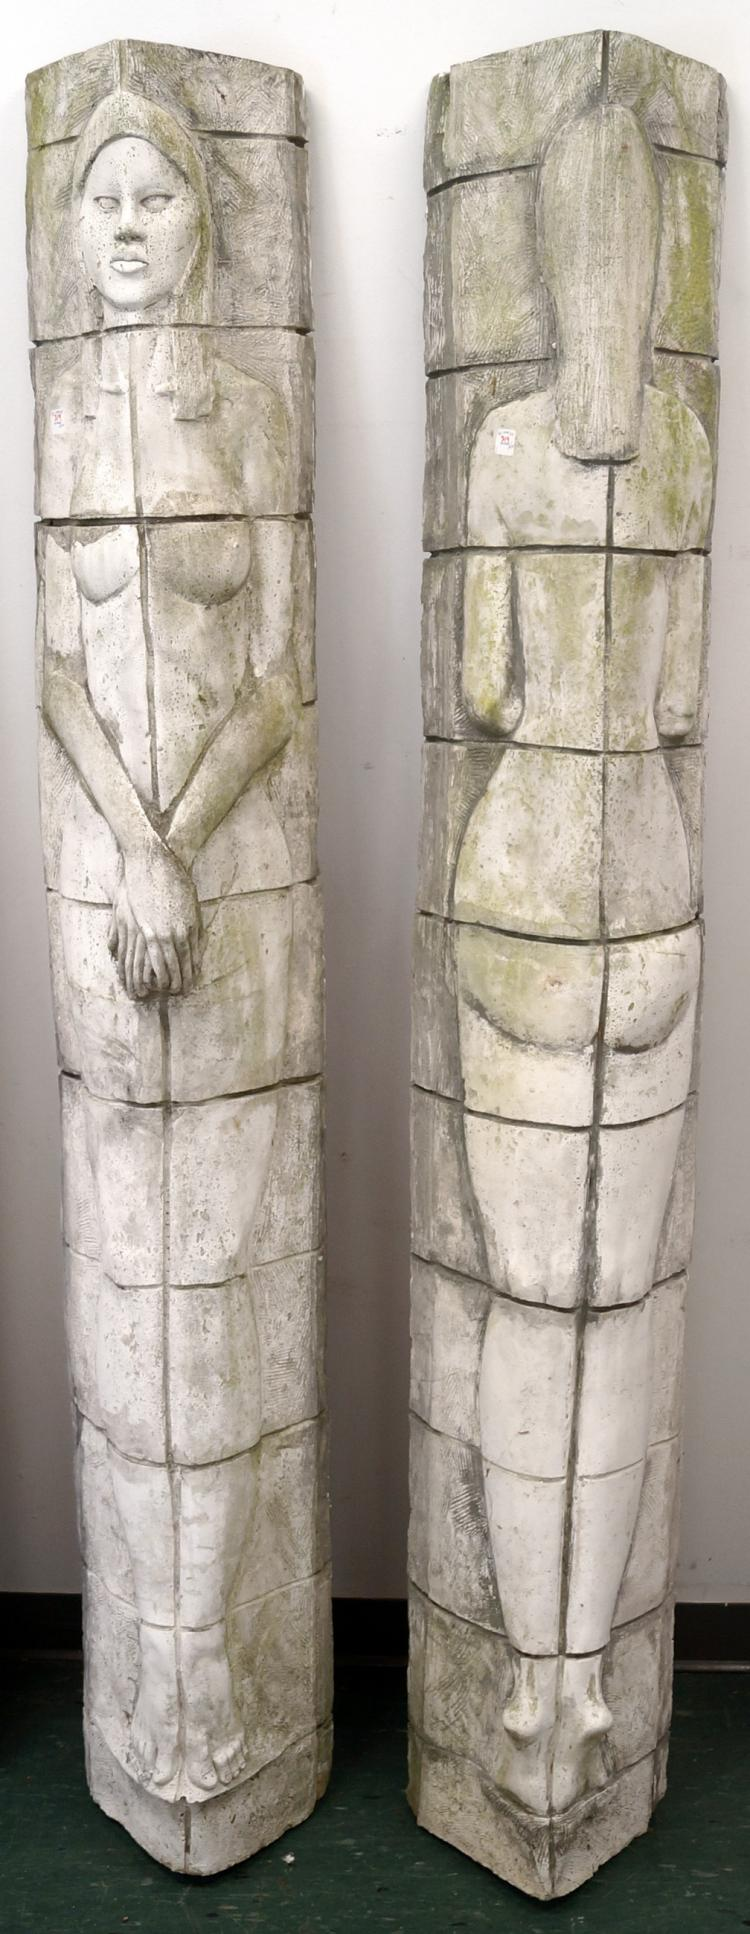 SURVING STUDIOS 2-PIECE CEMENT SCULPTURE, YIN